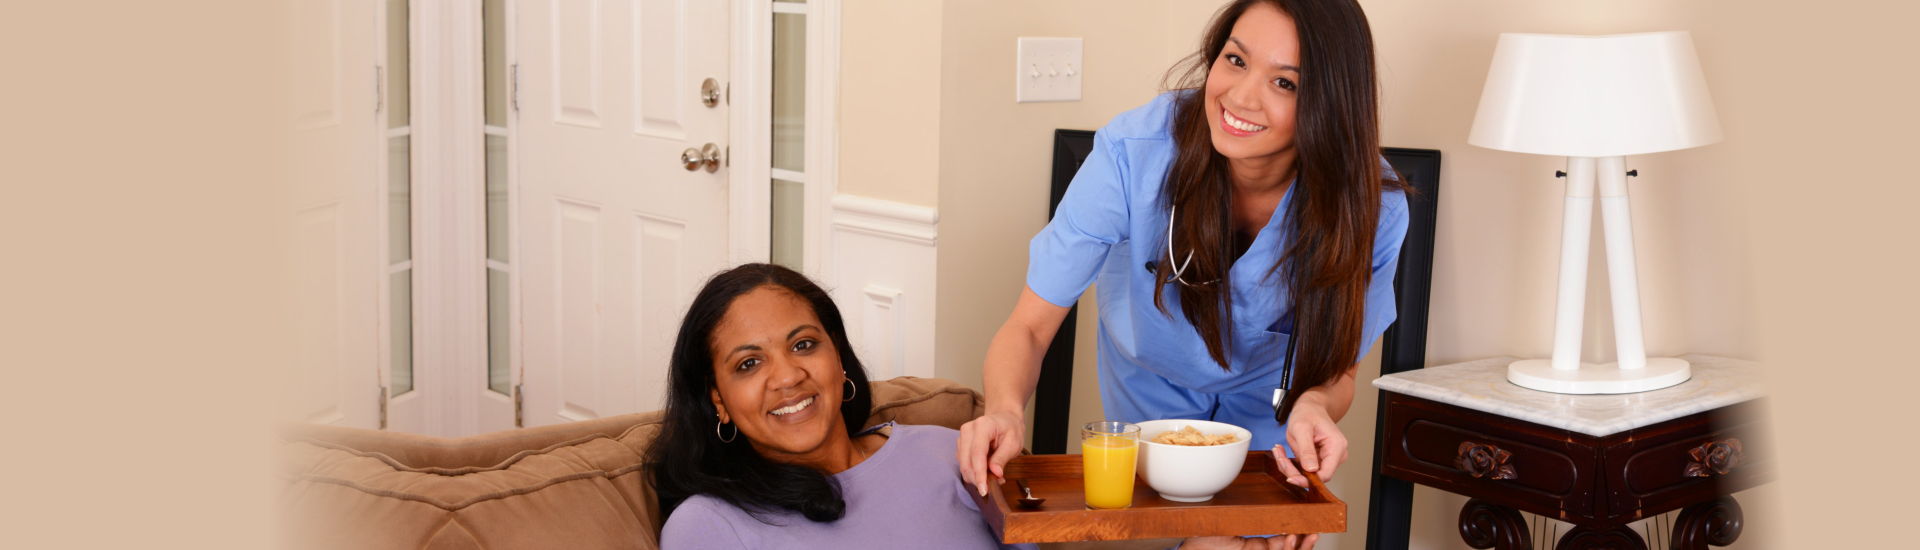 caregiver giving breakfast to a woman